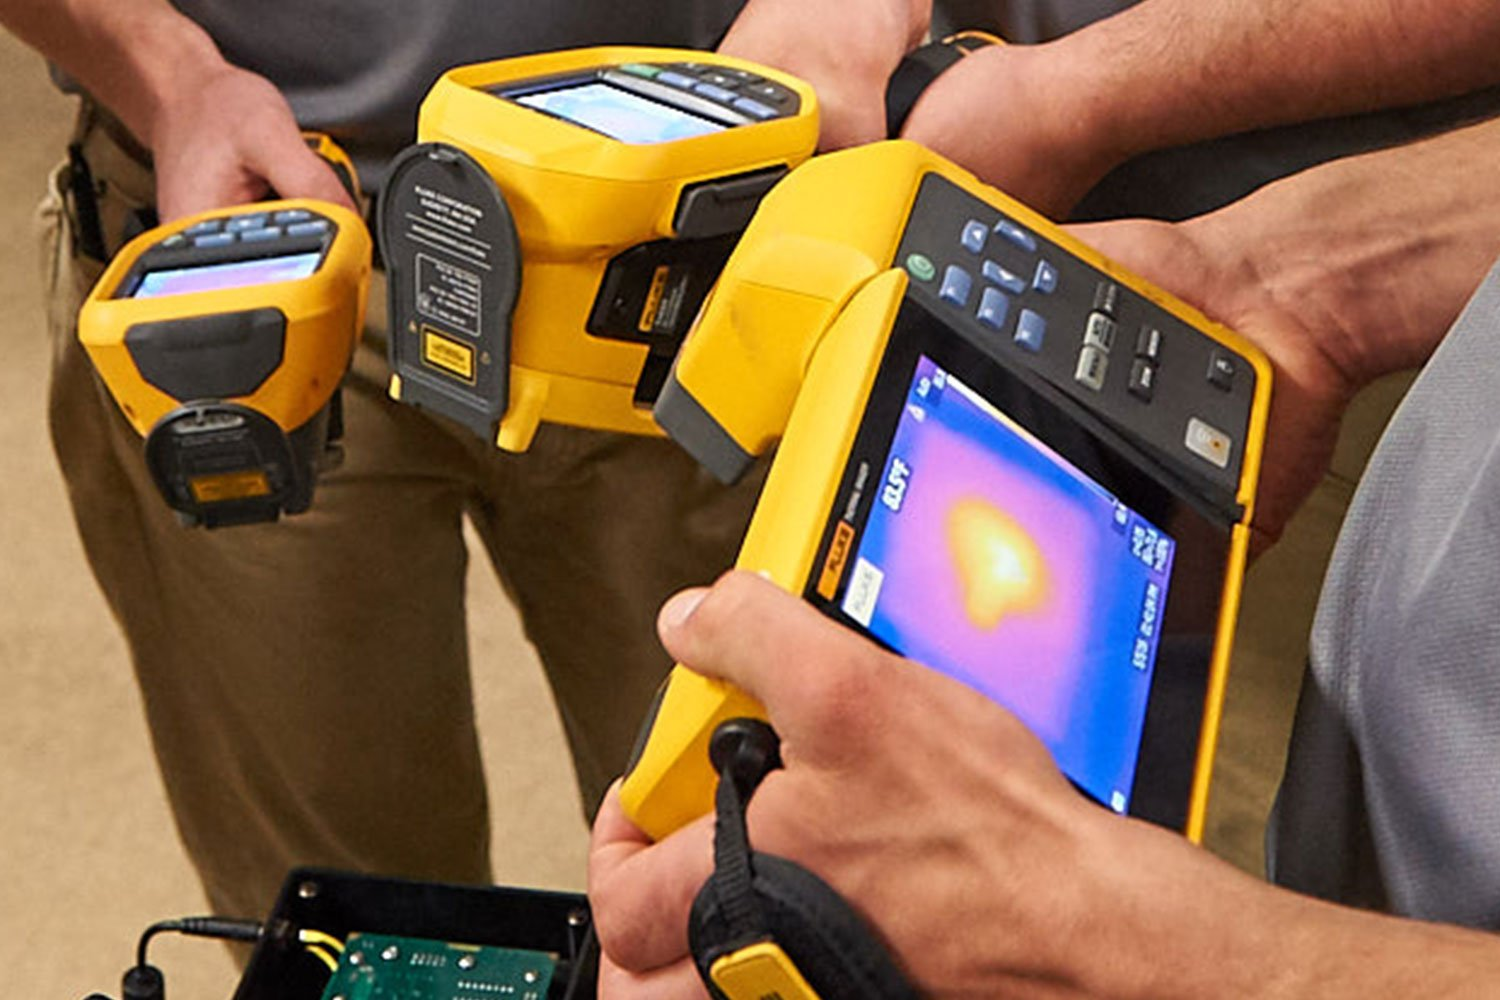 How thermographers get trained and certified